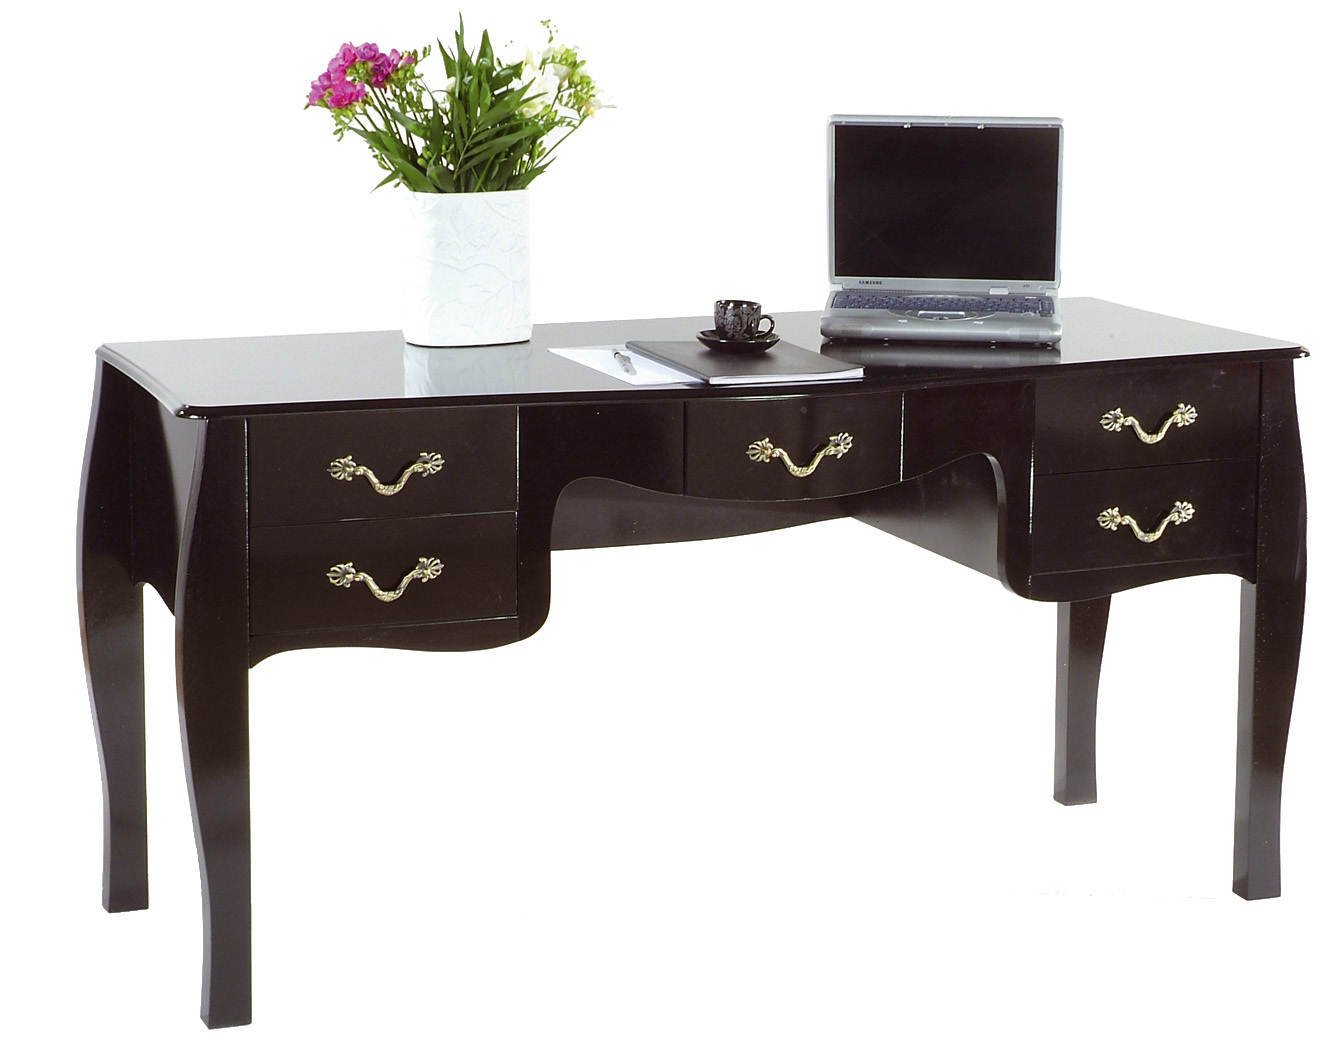 bureau baroque noir 5 tiroirs louisa miliboo. Black Bedroom Furniture Sets. Home Design Ideas